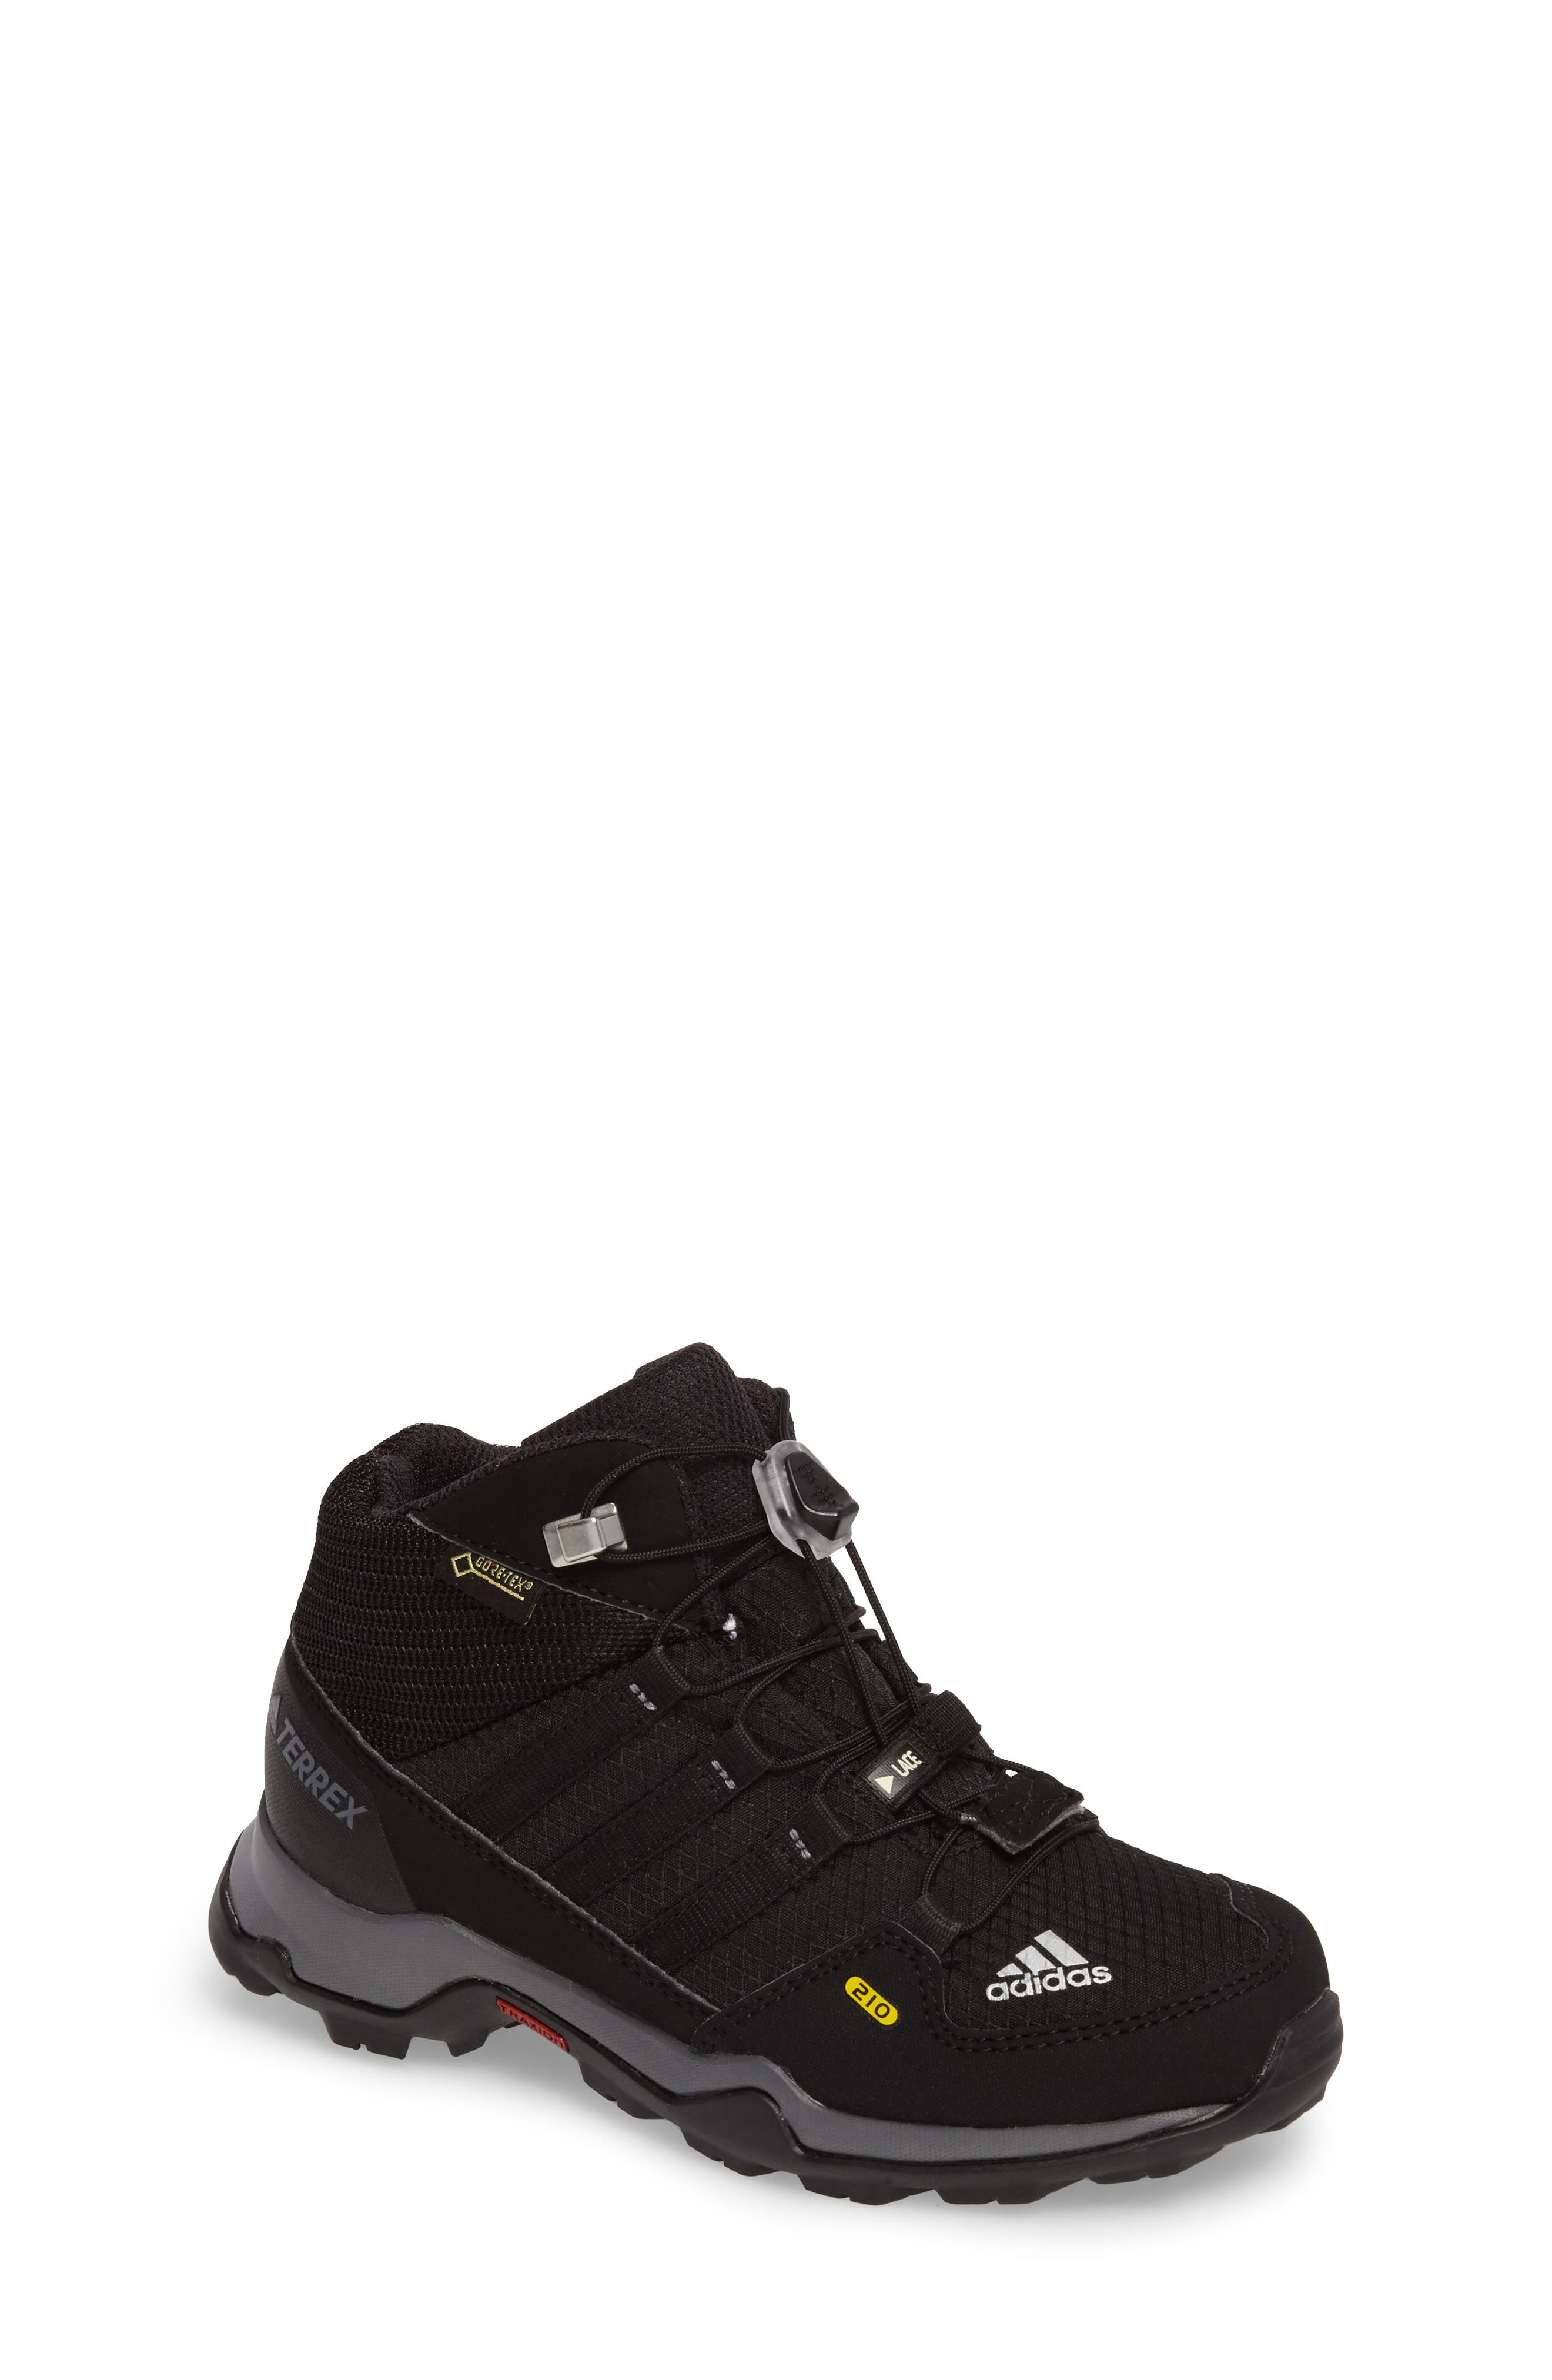 Terrex Mid Gore-Tex<sup>®</sup> Insulated Waterproof Sneaker Boot,                             Main thumbnail 1, color,                             001